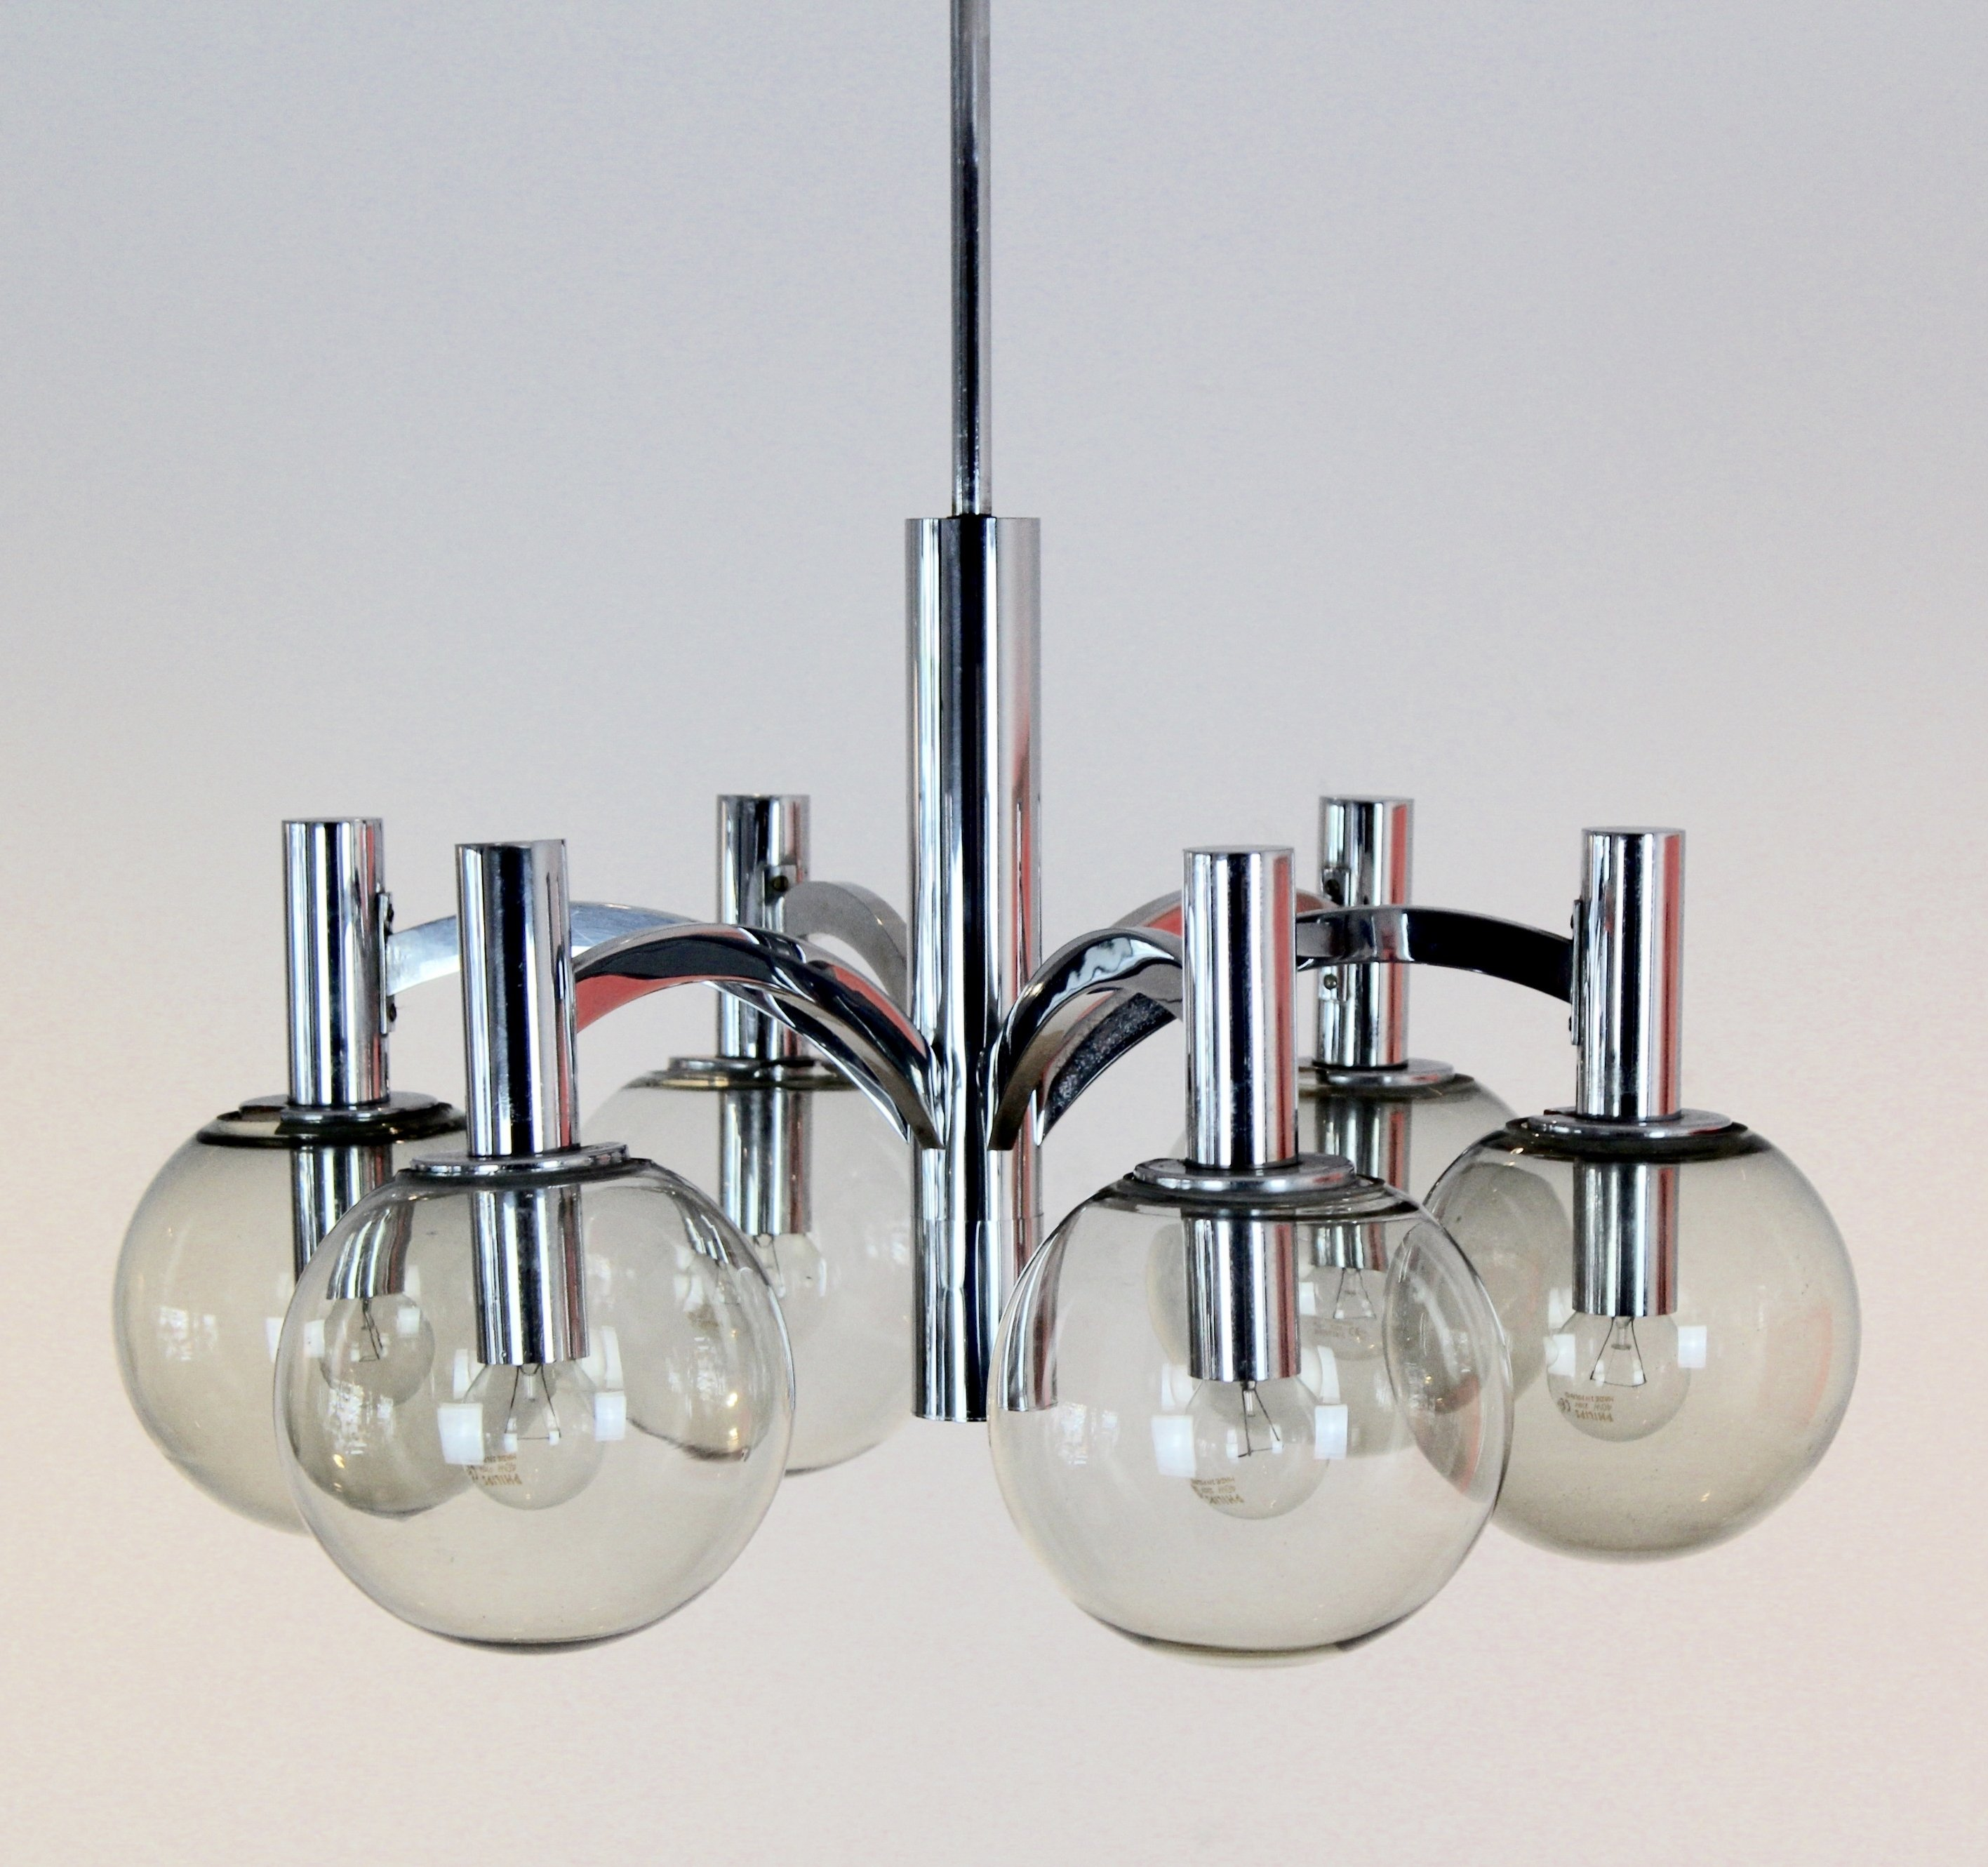 Leuchten Kaiser Chrome & Glass Chandelier By Kaiser Leuchten, Germany | #71864